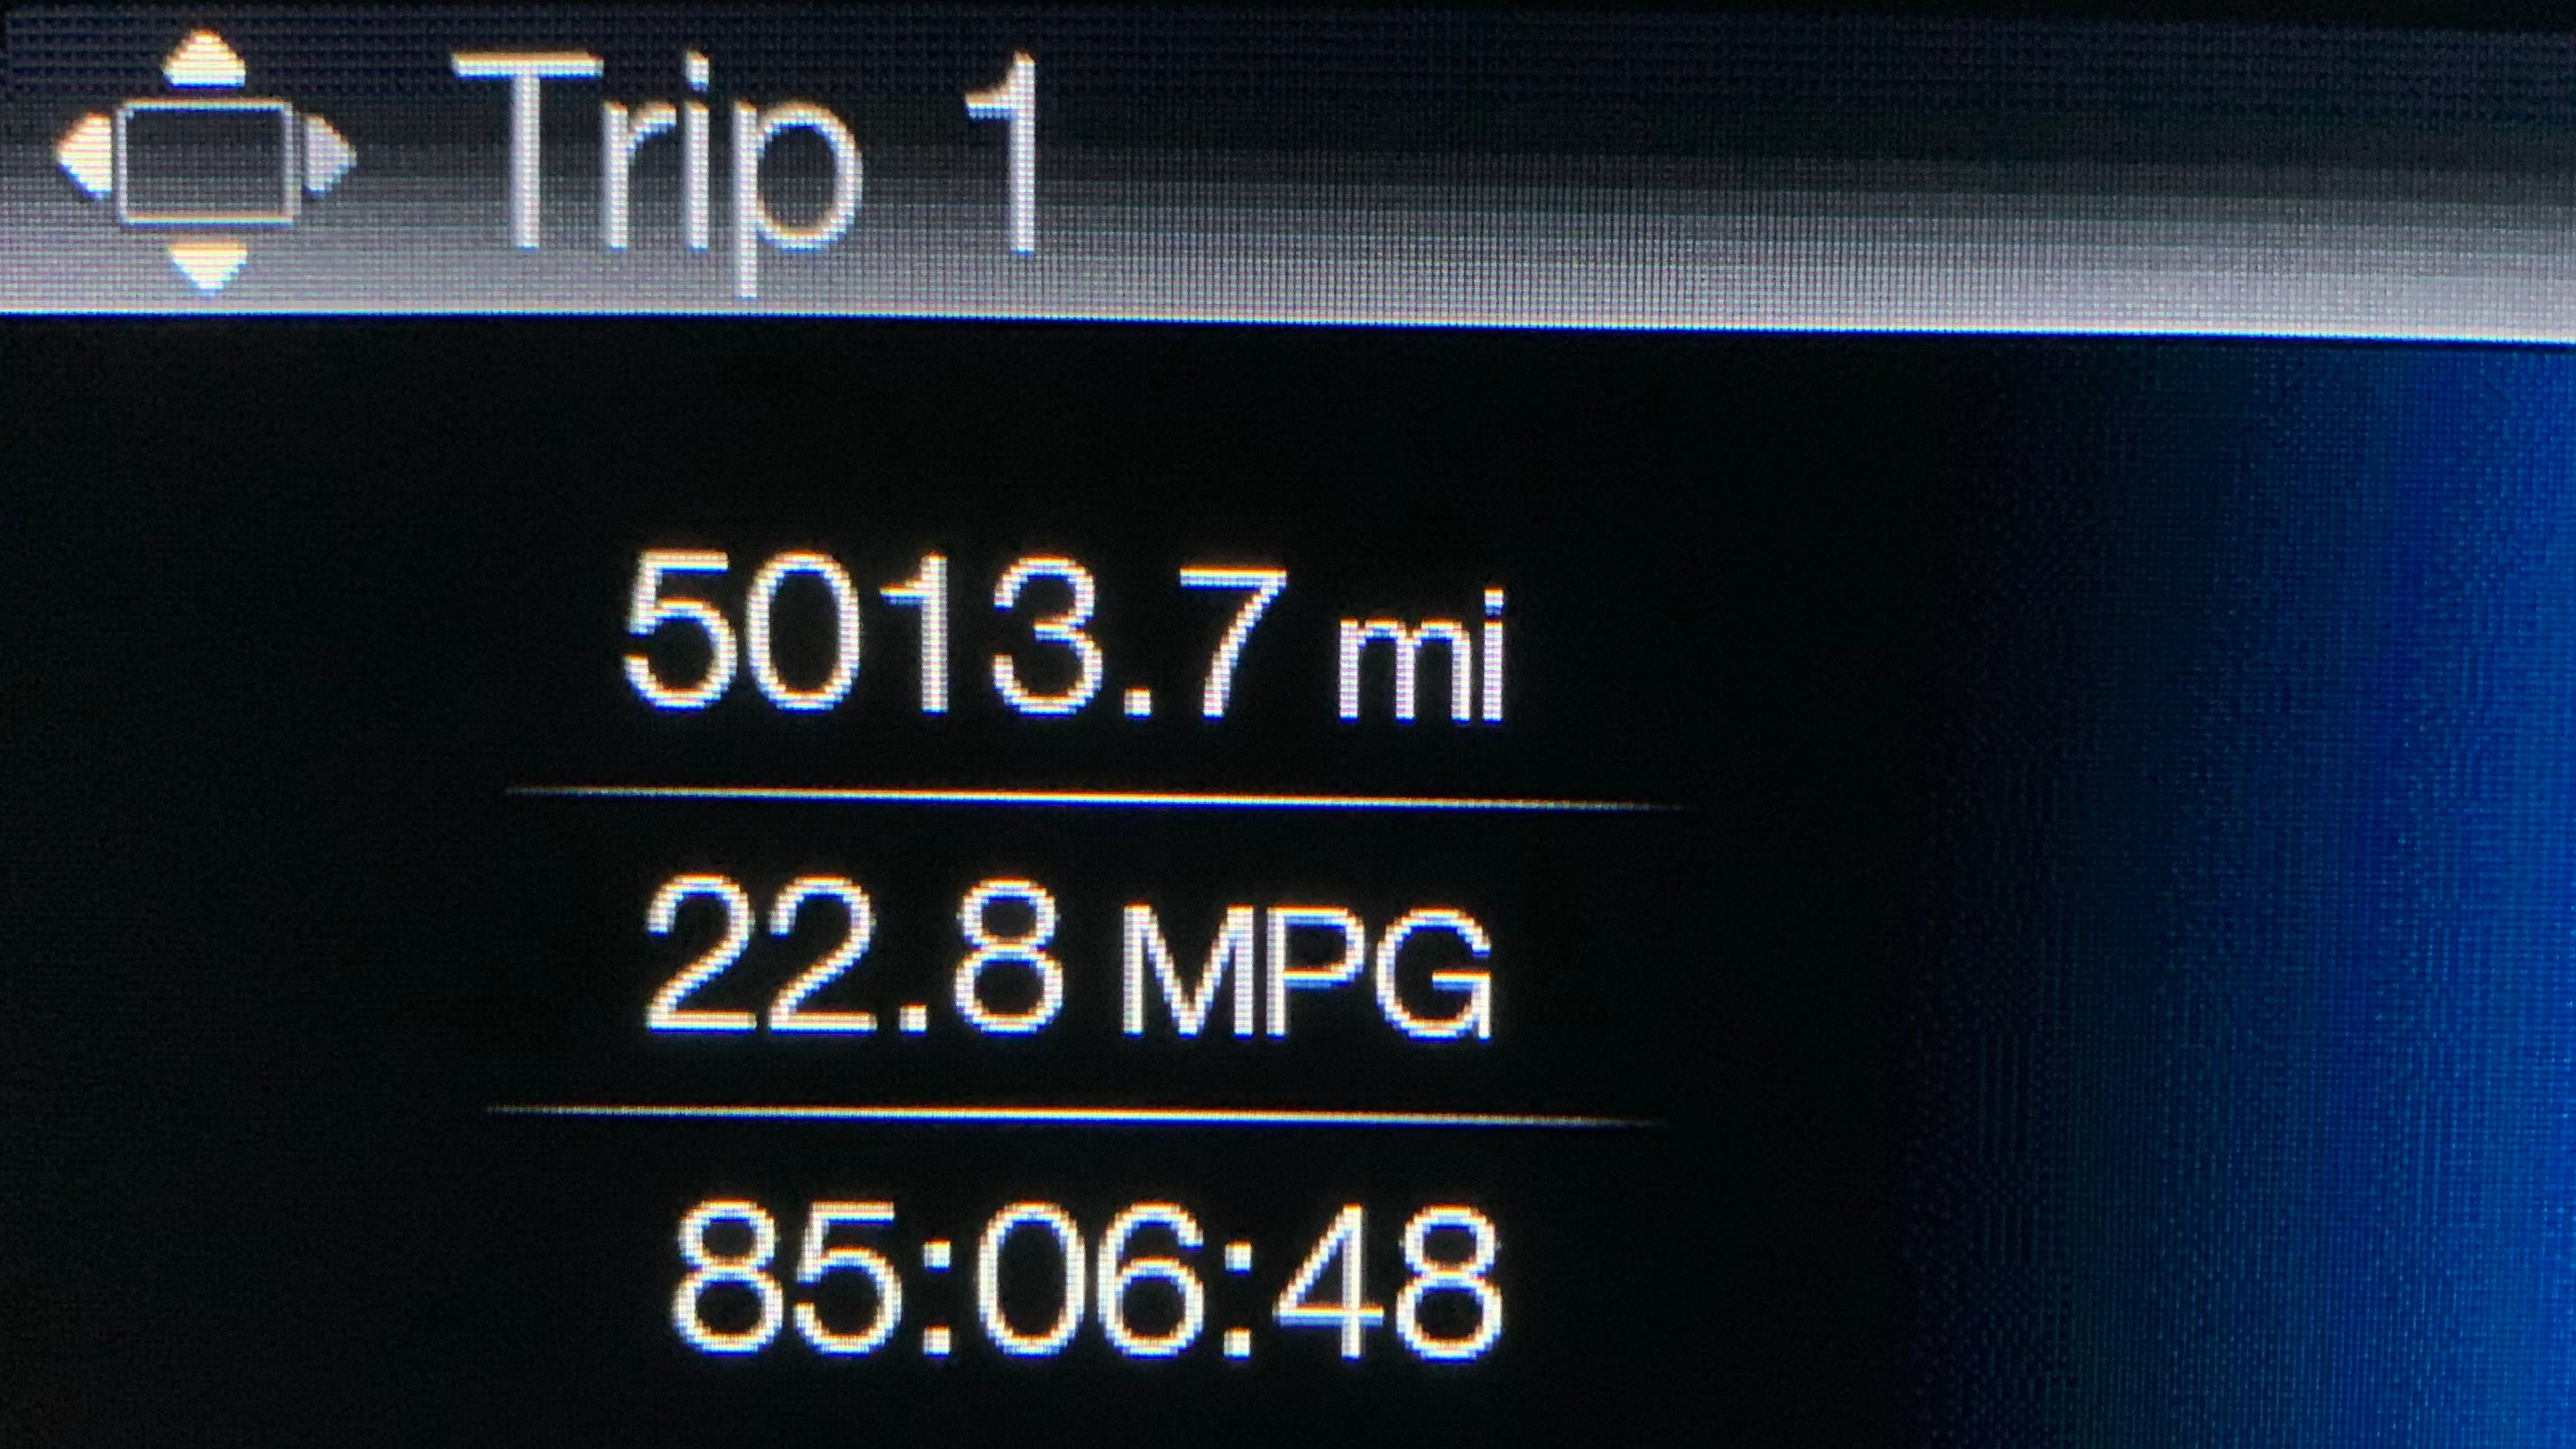 Final Trip Tally. Distance: 5013.7 miles. Time: 85:06:48